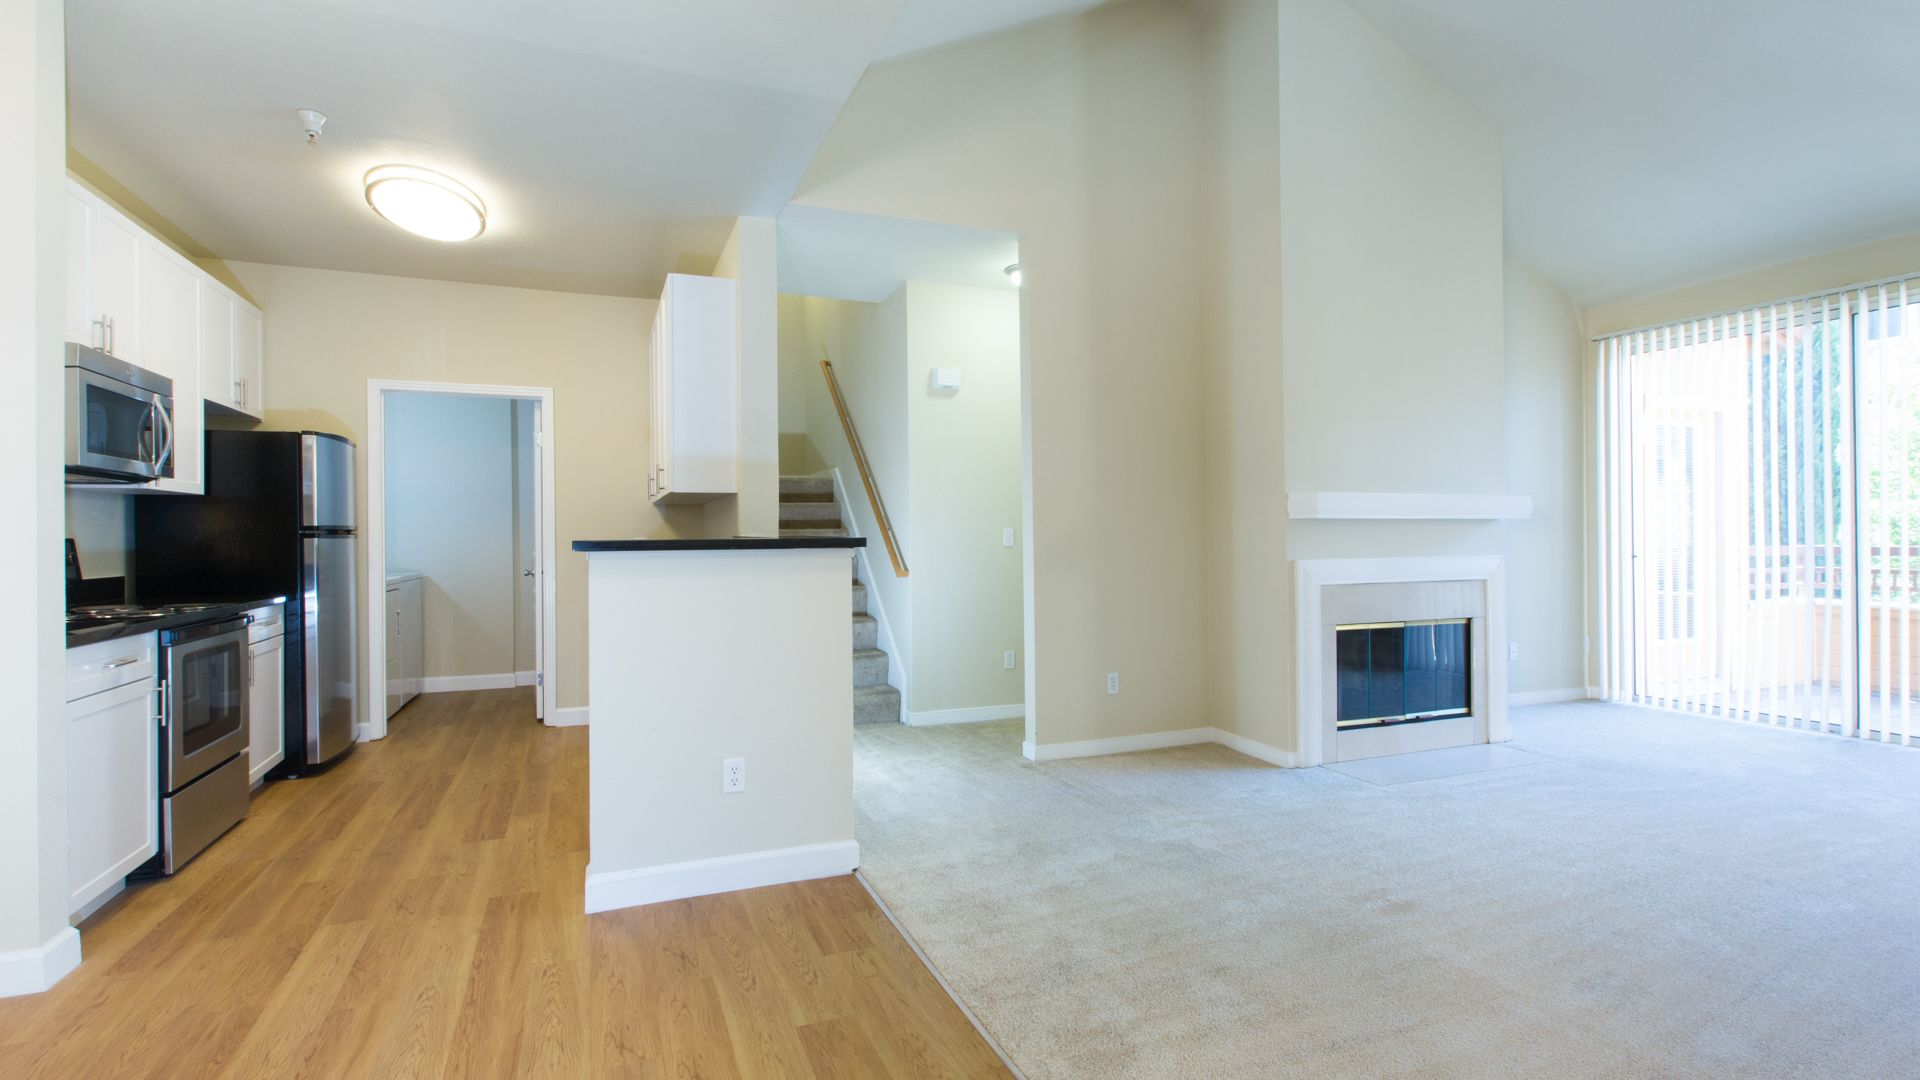 City Gate at Cupertino Apartments - Kitchen and Living Room